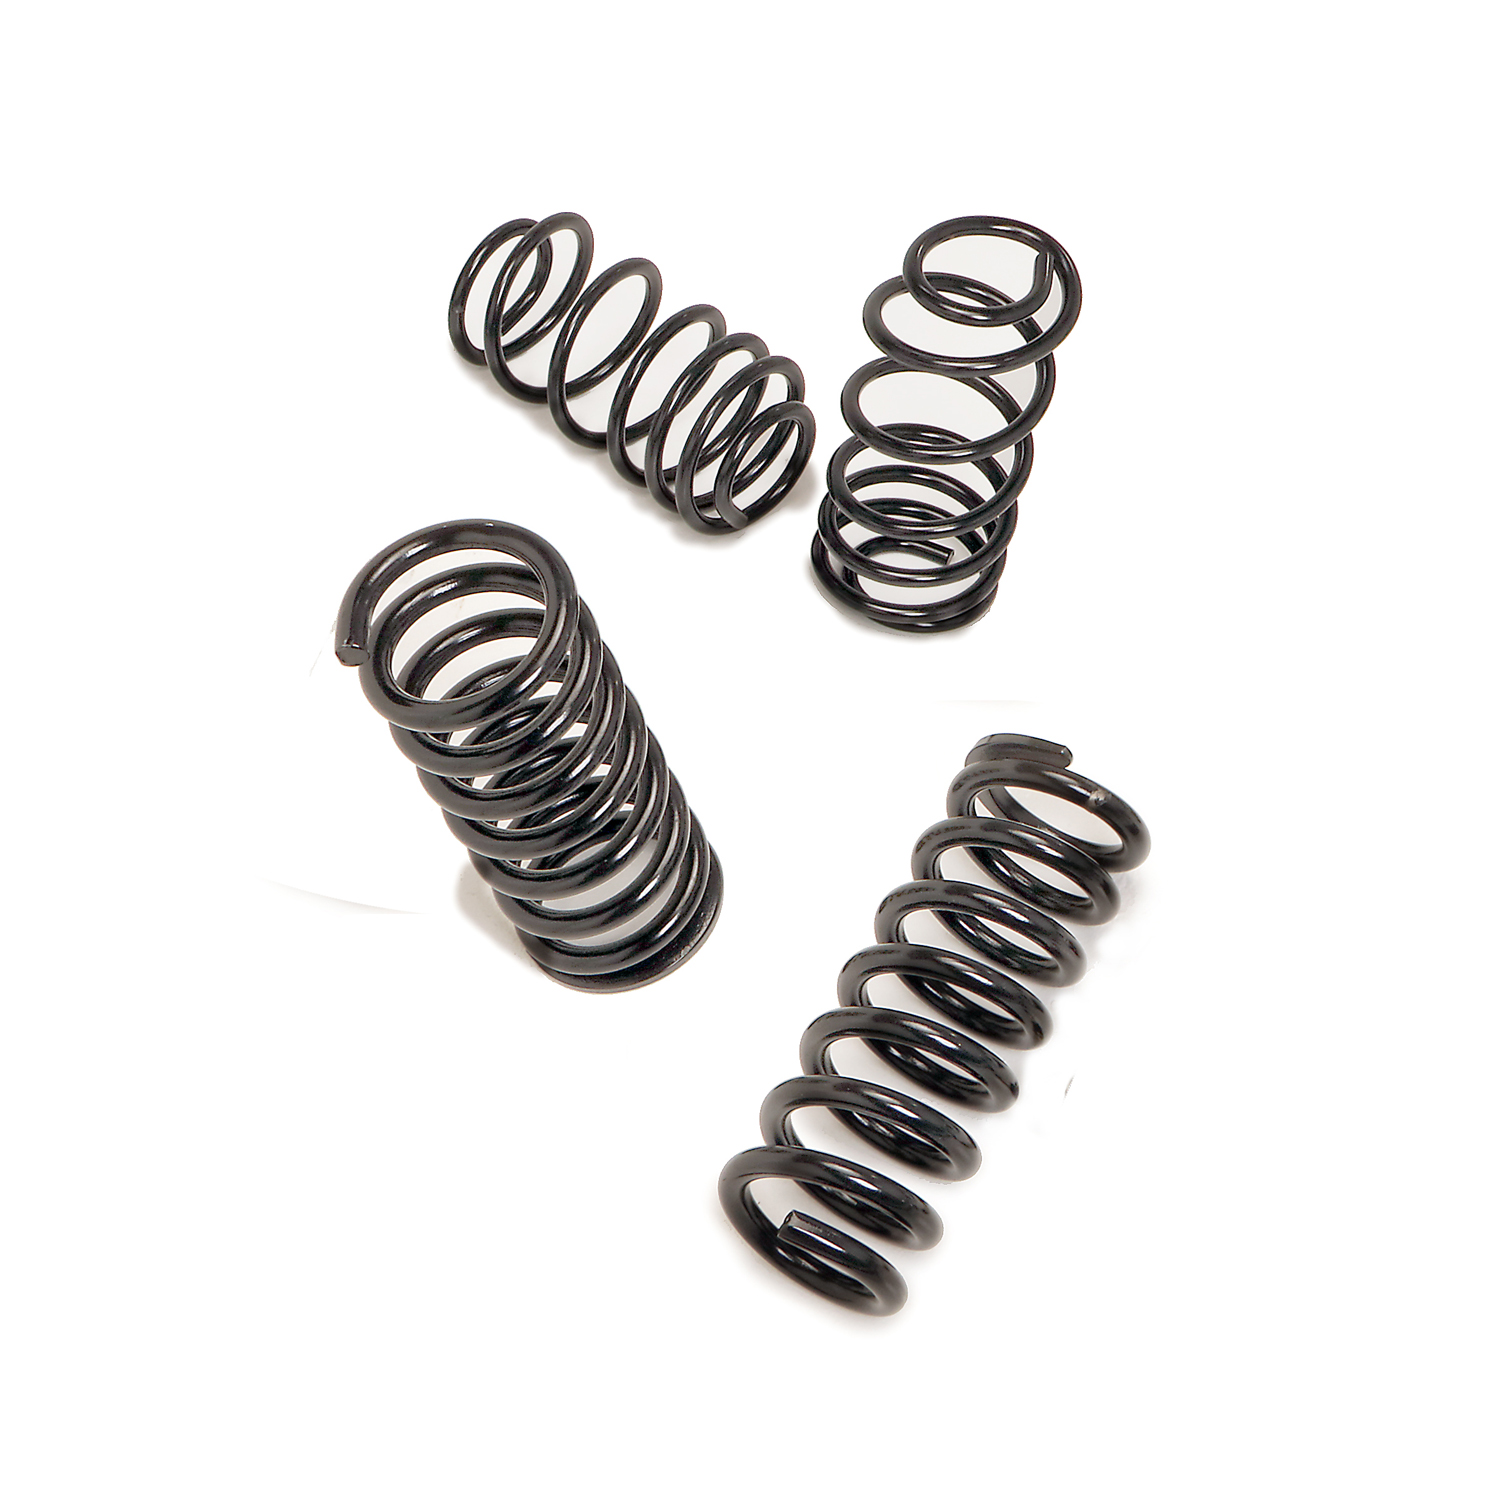 1965 - 1966 Ford Galaxie Front and Rear Coil Springs By Hotchkis